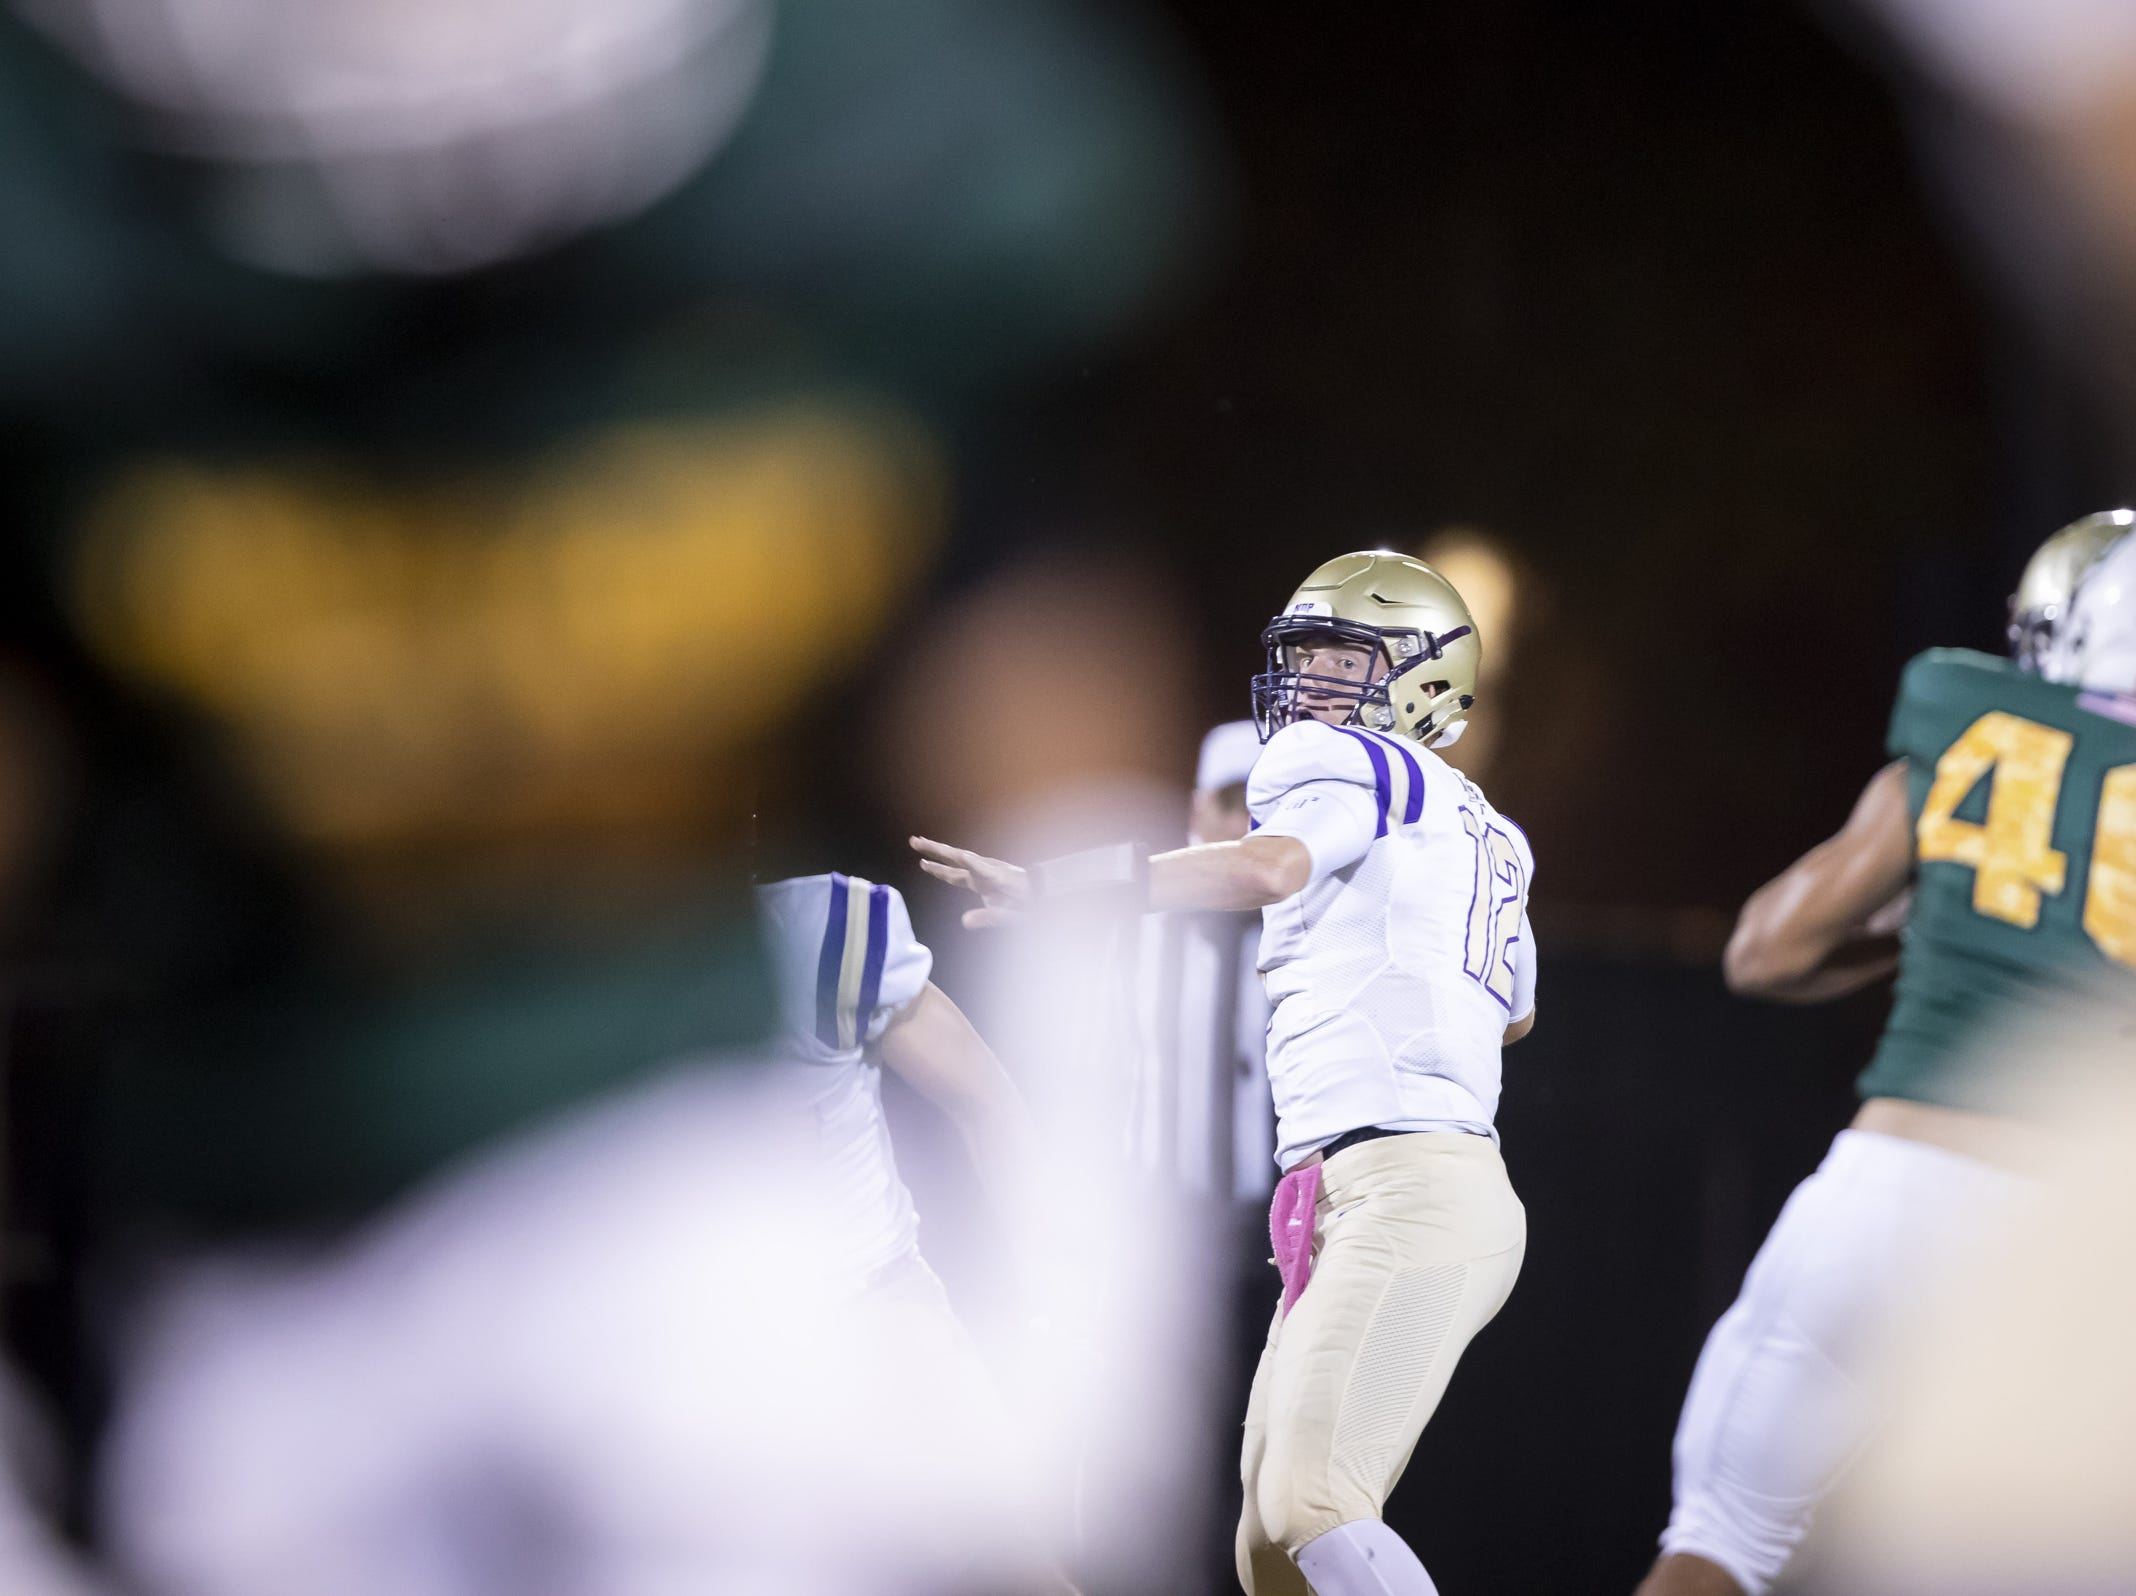 Senior quarterback Jake Farrell (12) of the Notre Dame Prep Saints looks to throw a pass against the Horizon Huskies at Horizon High School on Friday, October 5, 2018 in Scottsdale, Arizona. #azhsfb